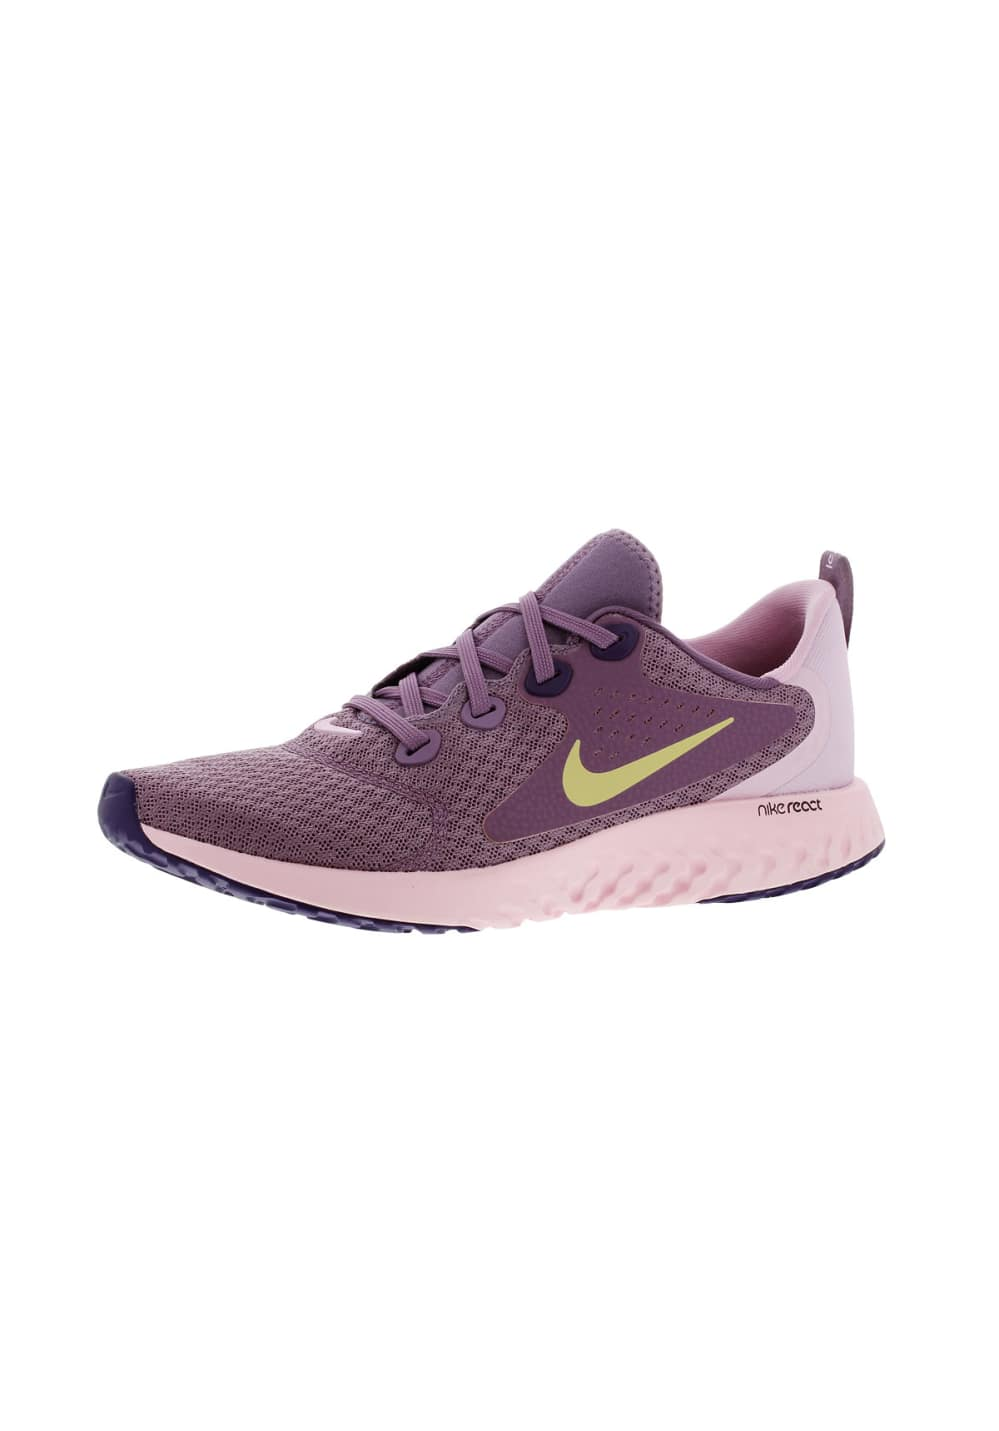 Nike Legend React (GS) - Running shoes for Girls - Purple  6c5af6f3e96